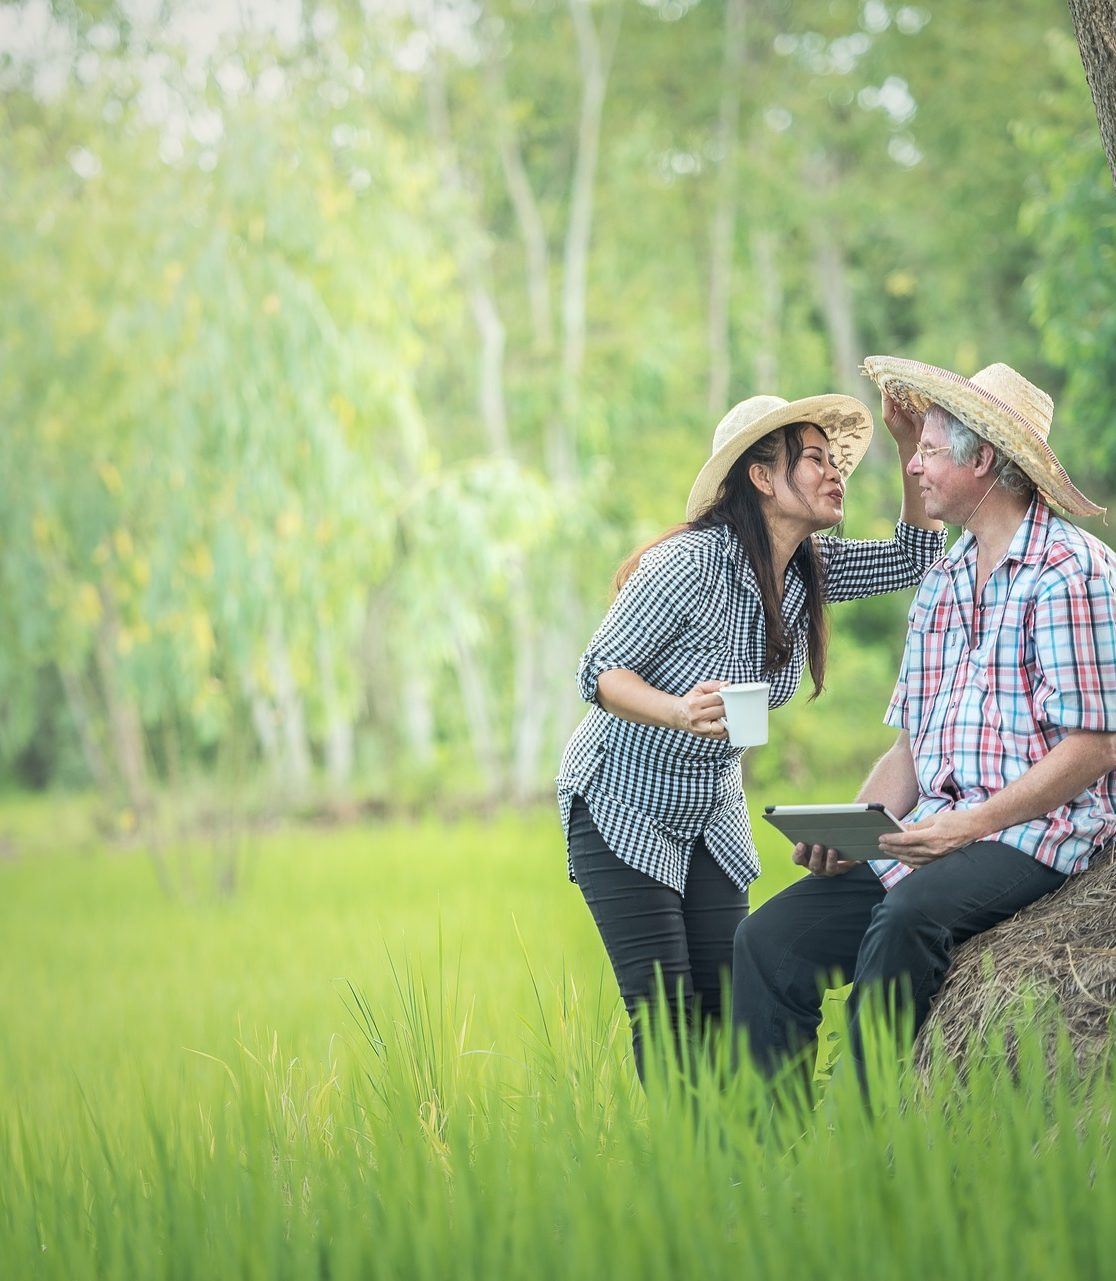 Couple enjoying time in the countryside.